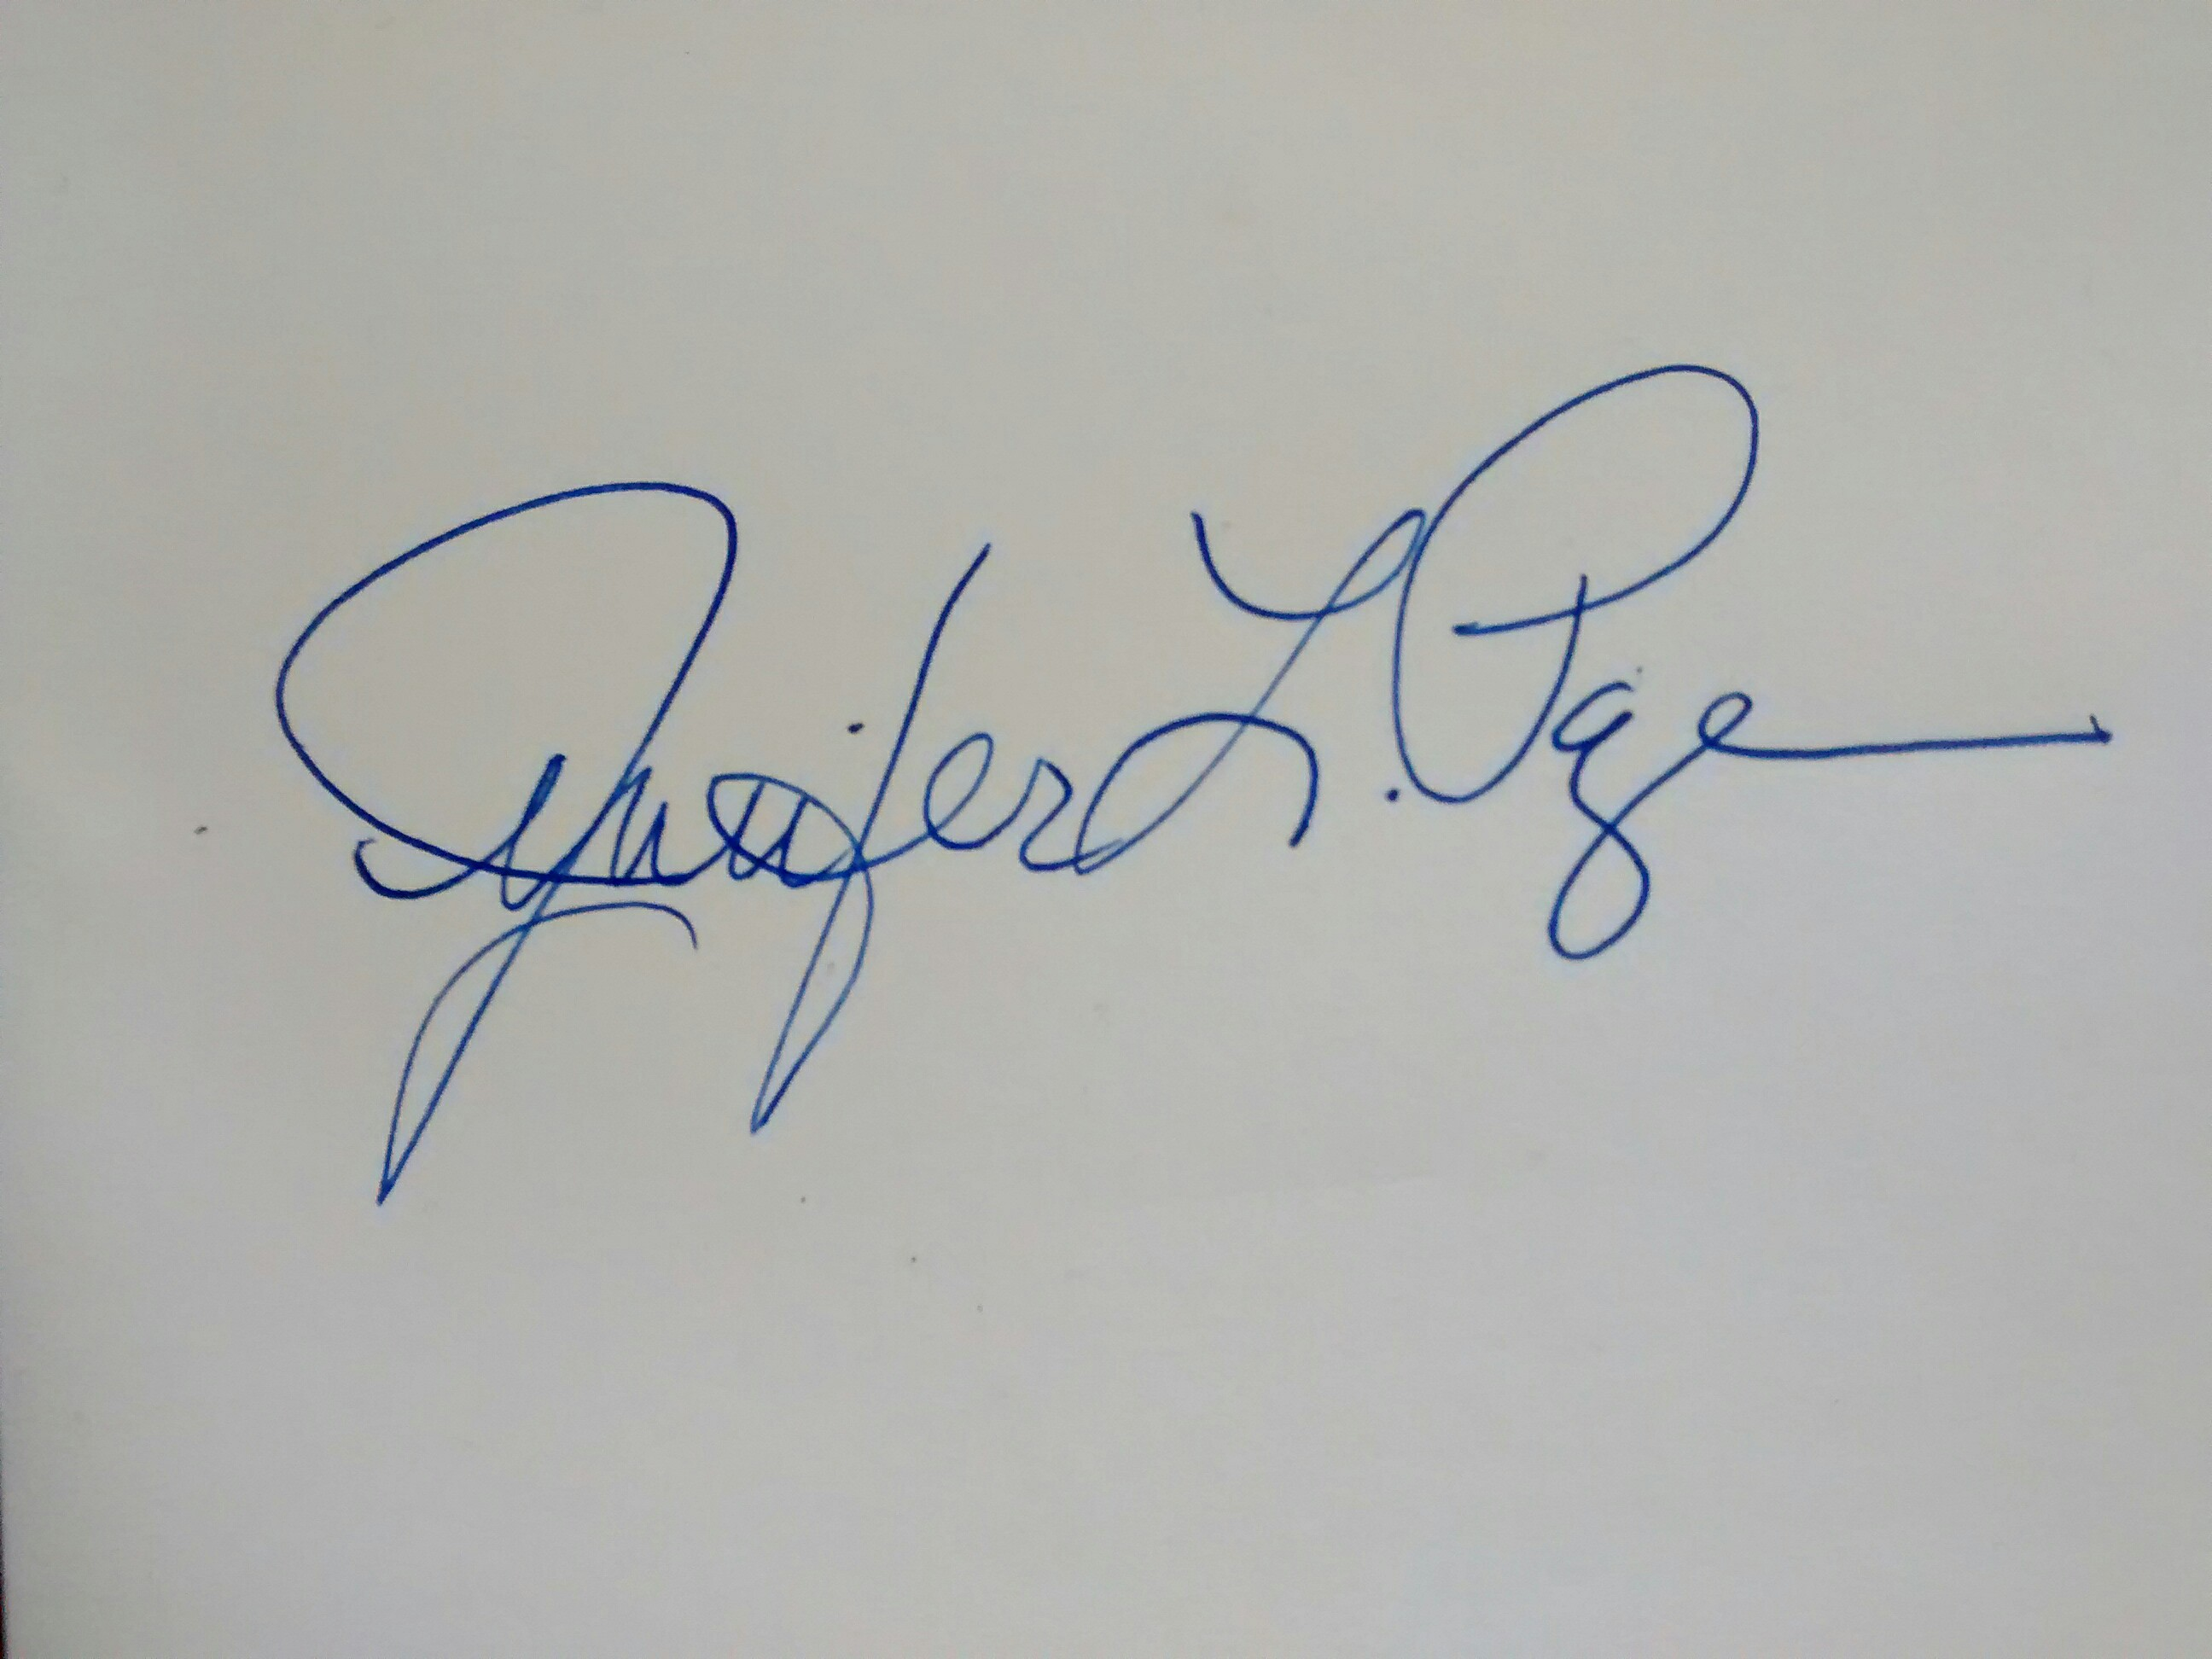 jennifer page's Signature